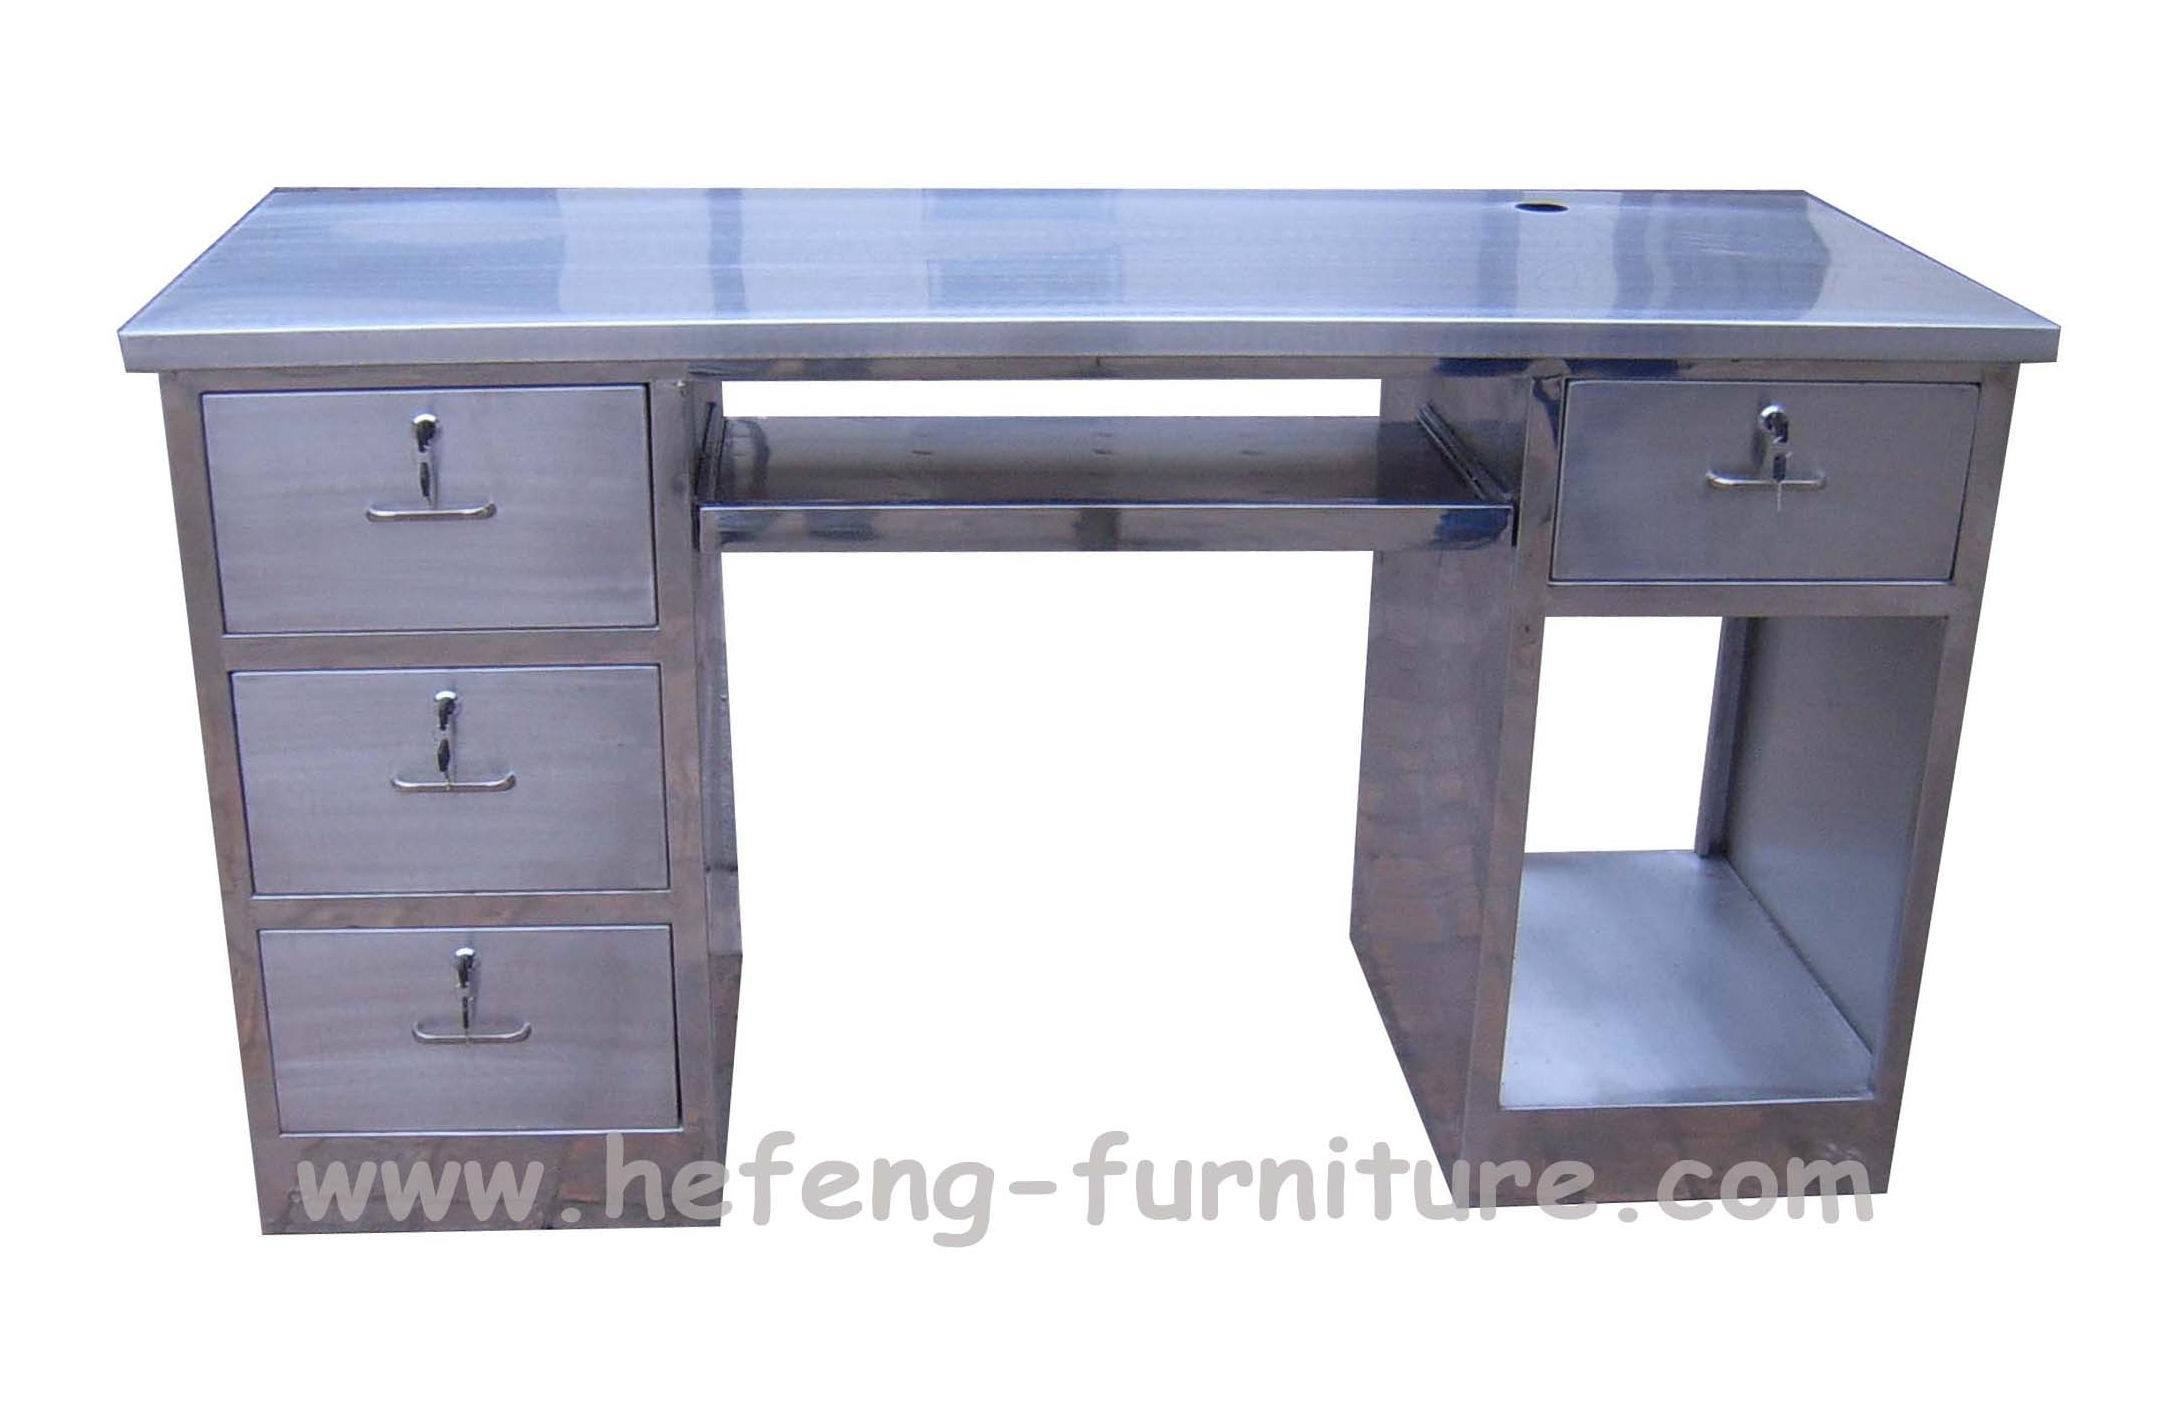 Stainless steel office desk 28 images stainless steel office desk with drawers comacina by - Metal office desk ...